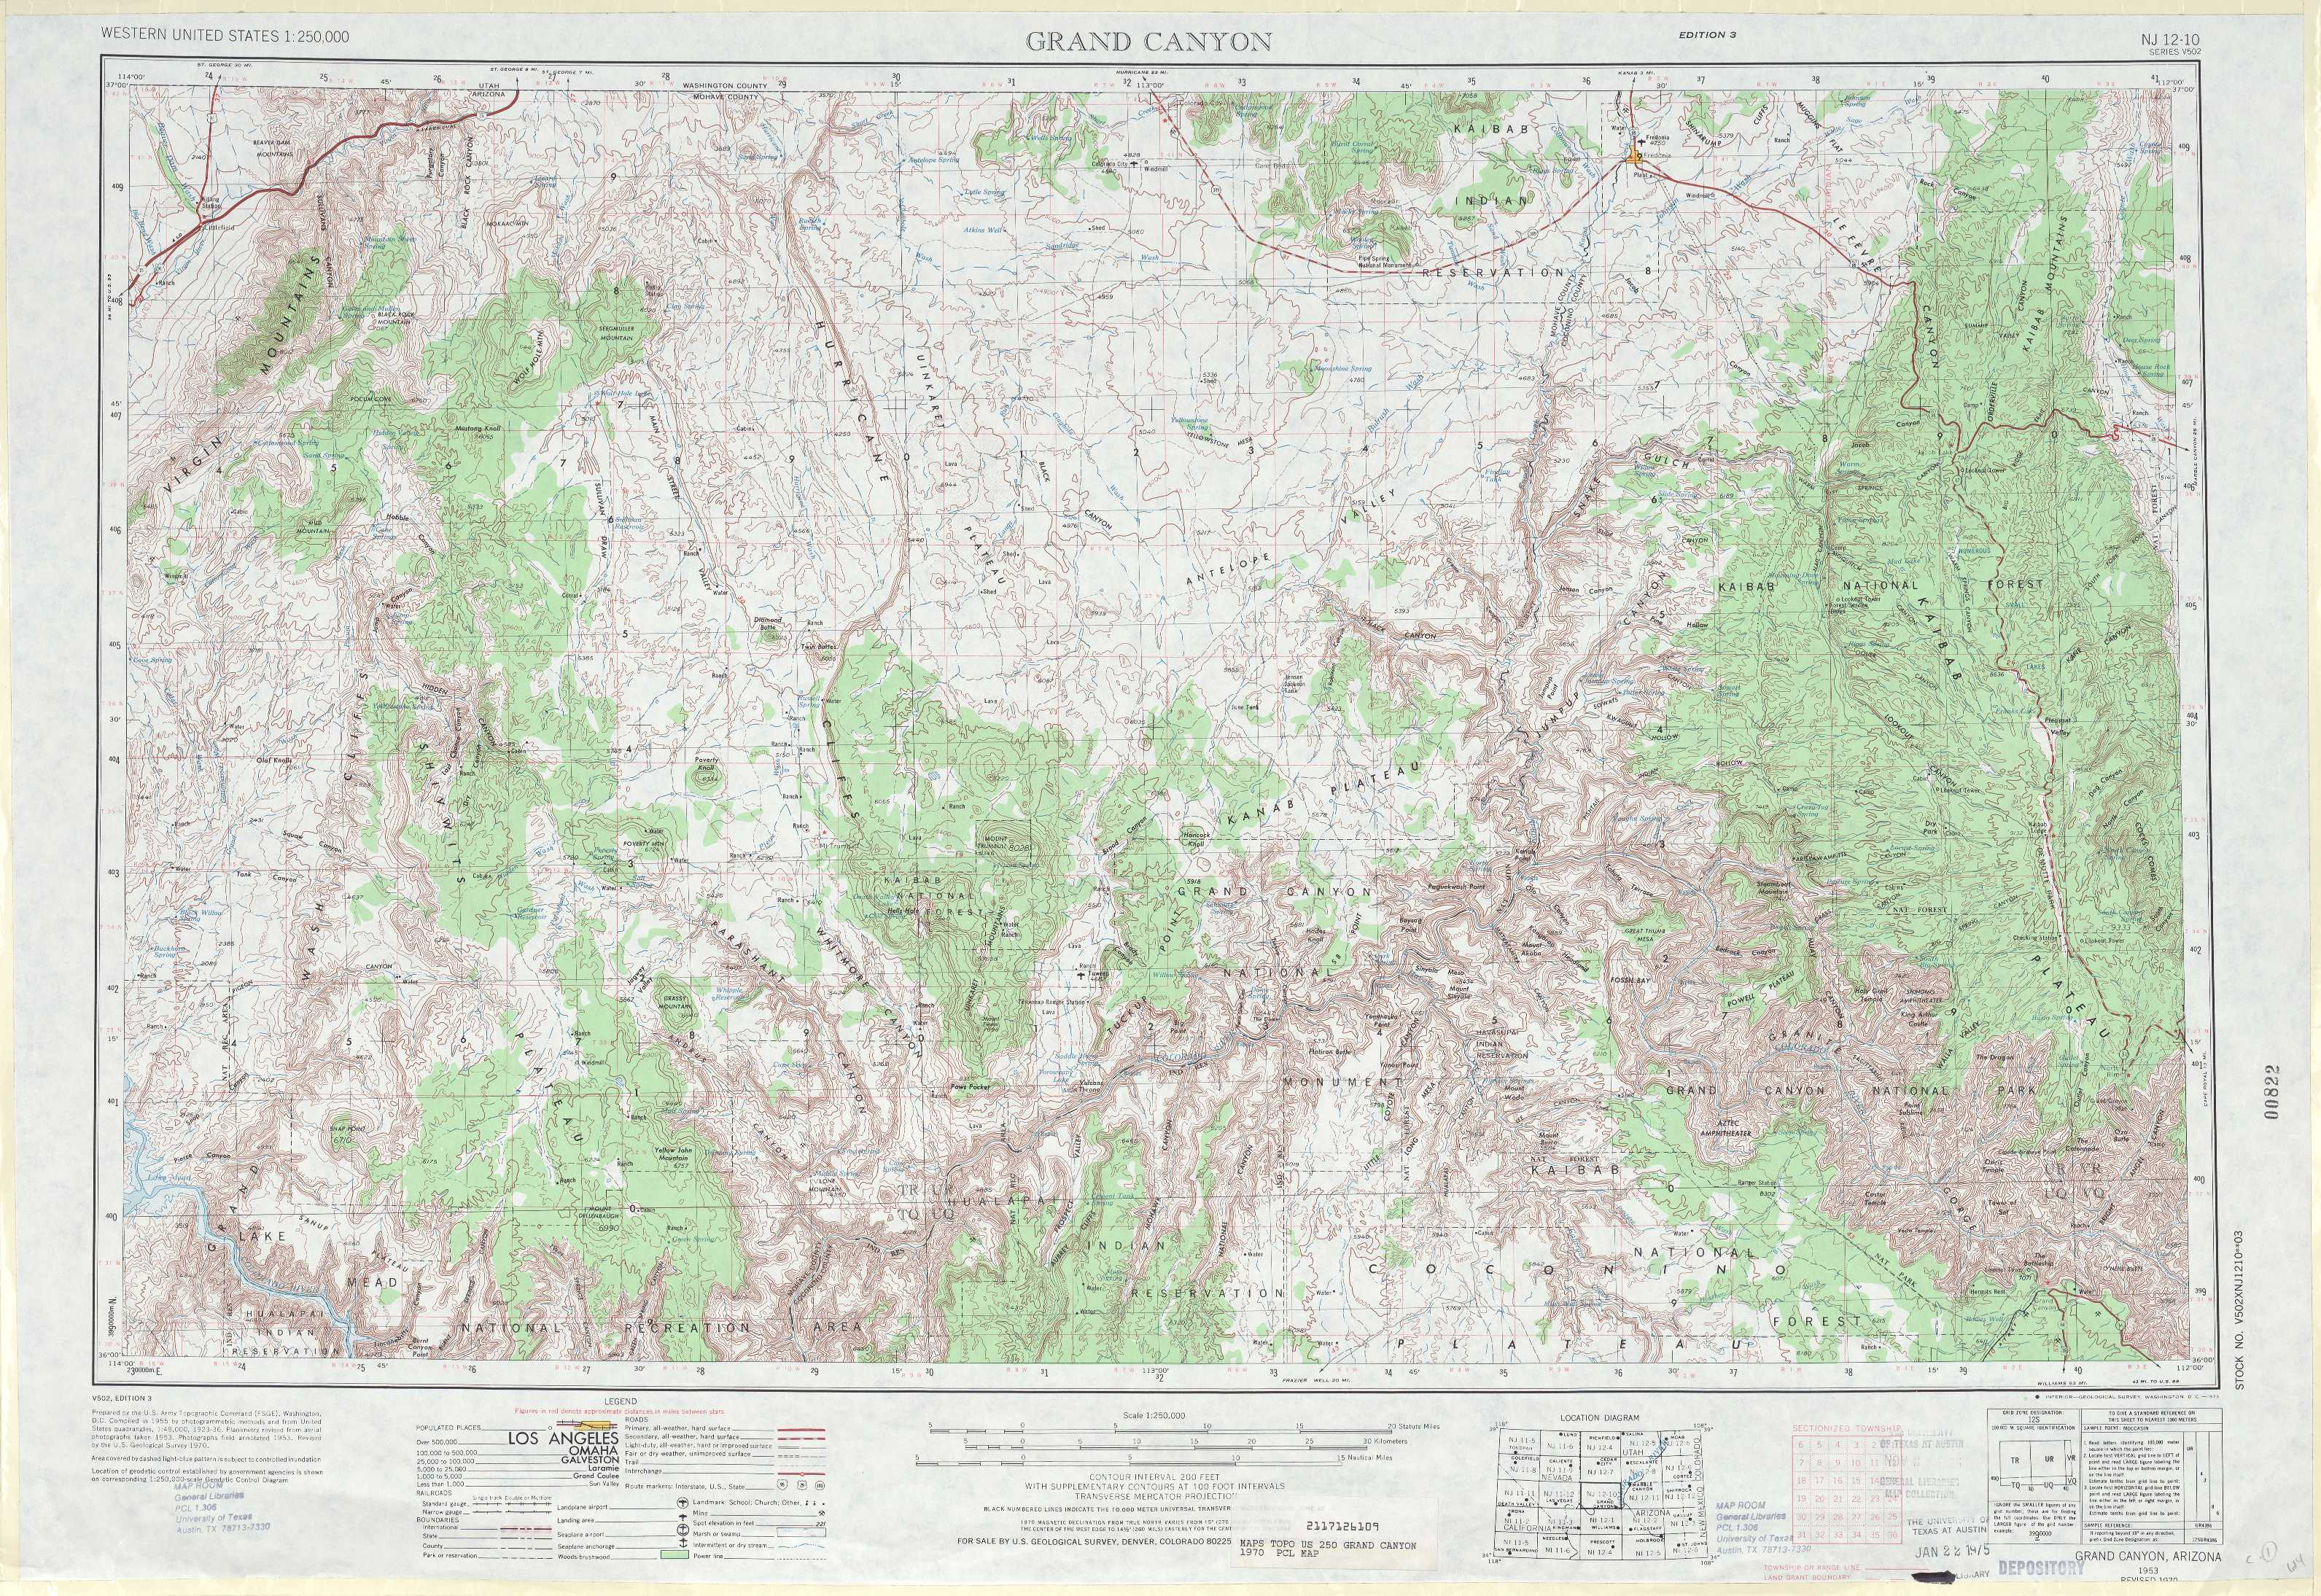 Topographic Map Grand Canyon.Grand Canyon Topographic Maps Az Usgs Topo Quad 36112a1 At 1